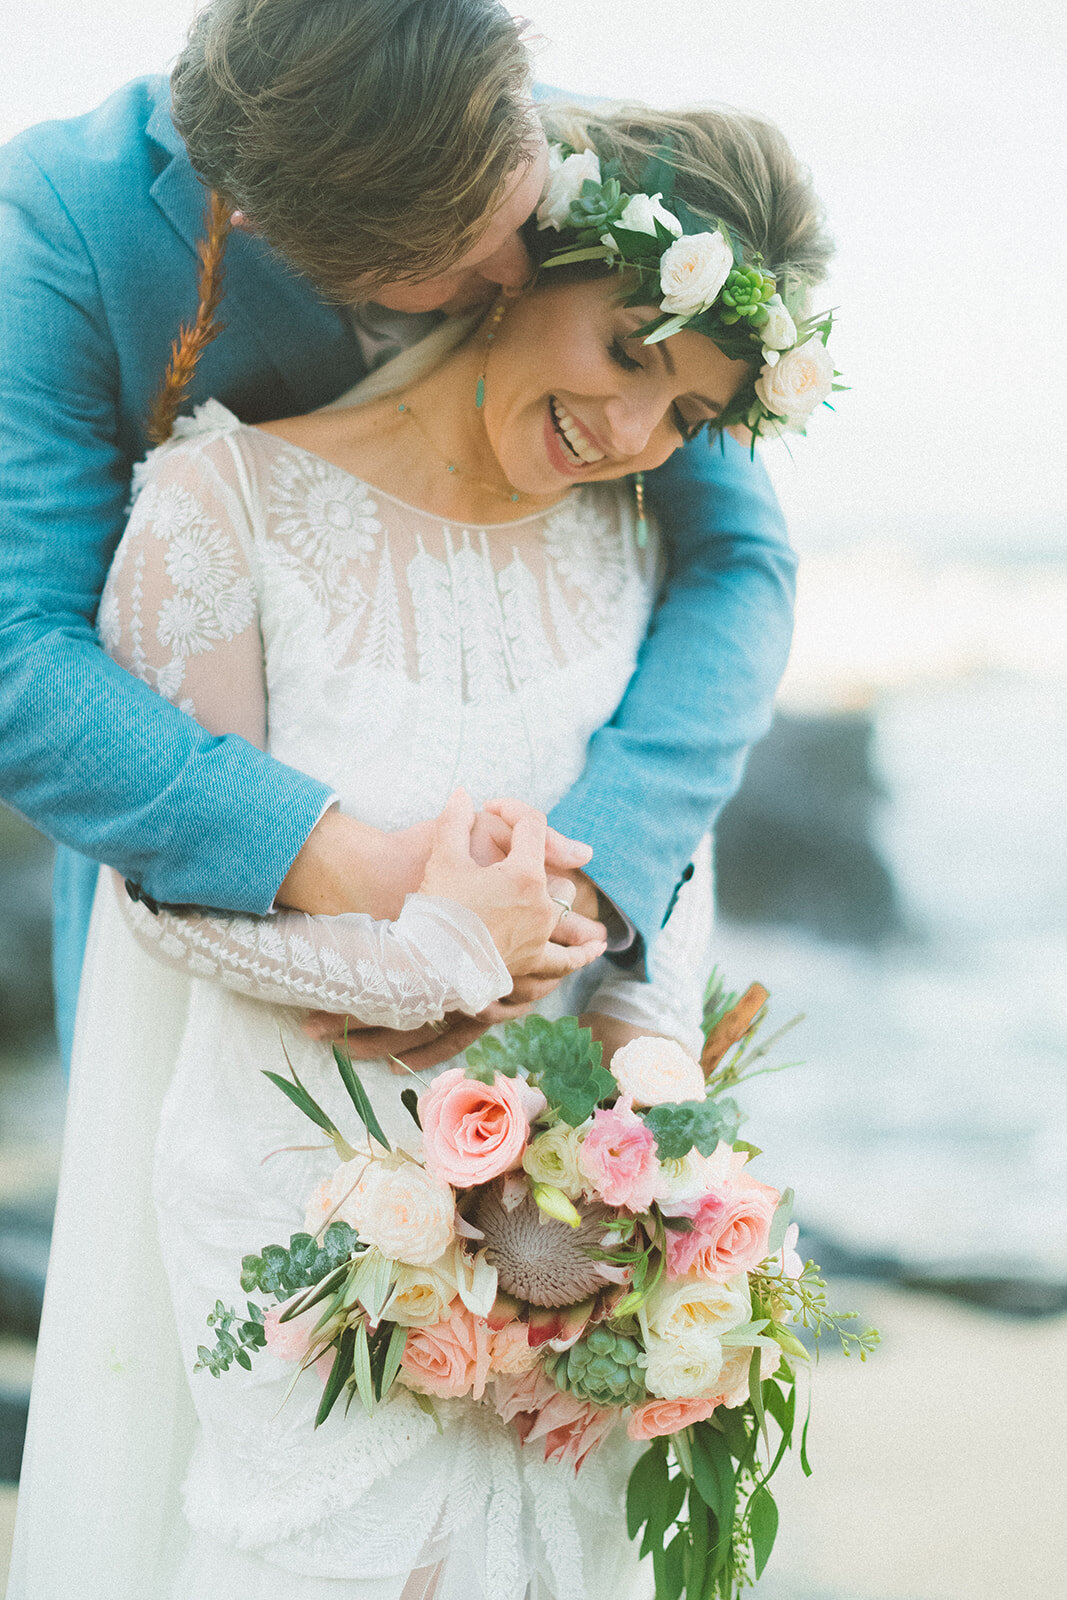 Maui wedding photographer20181126_0041.jpg